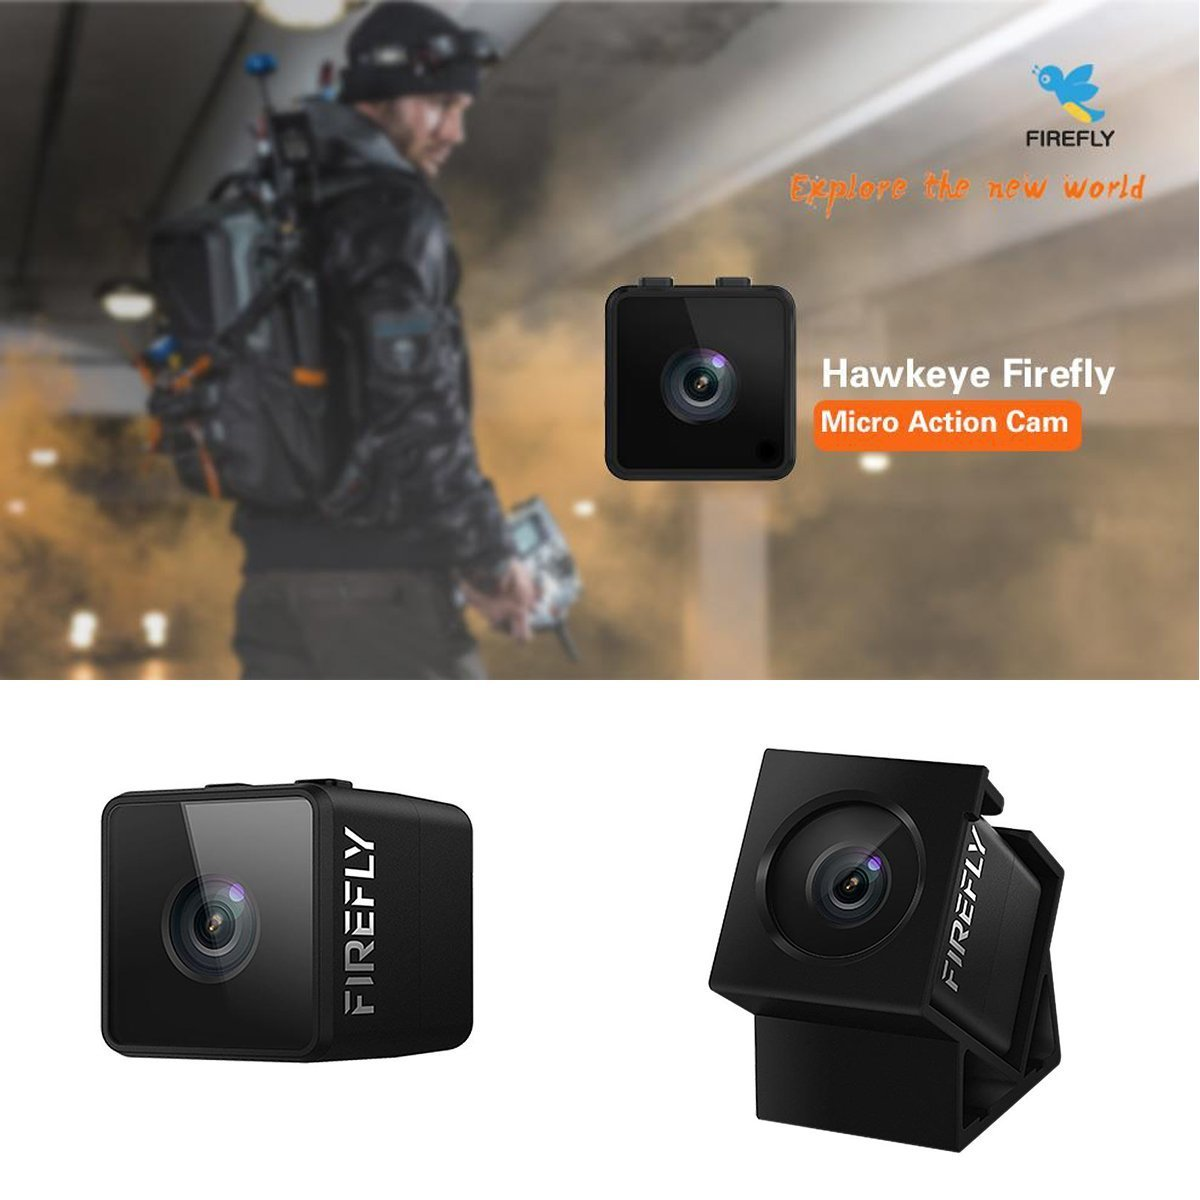 Mini FPV Camera Hawkeye Firefly Spy Camera 160 Degree HD 1080P FPV Micro Action Camera DVR Built-in Mic for RC Drone by Firefly (Image #4)